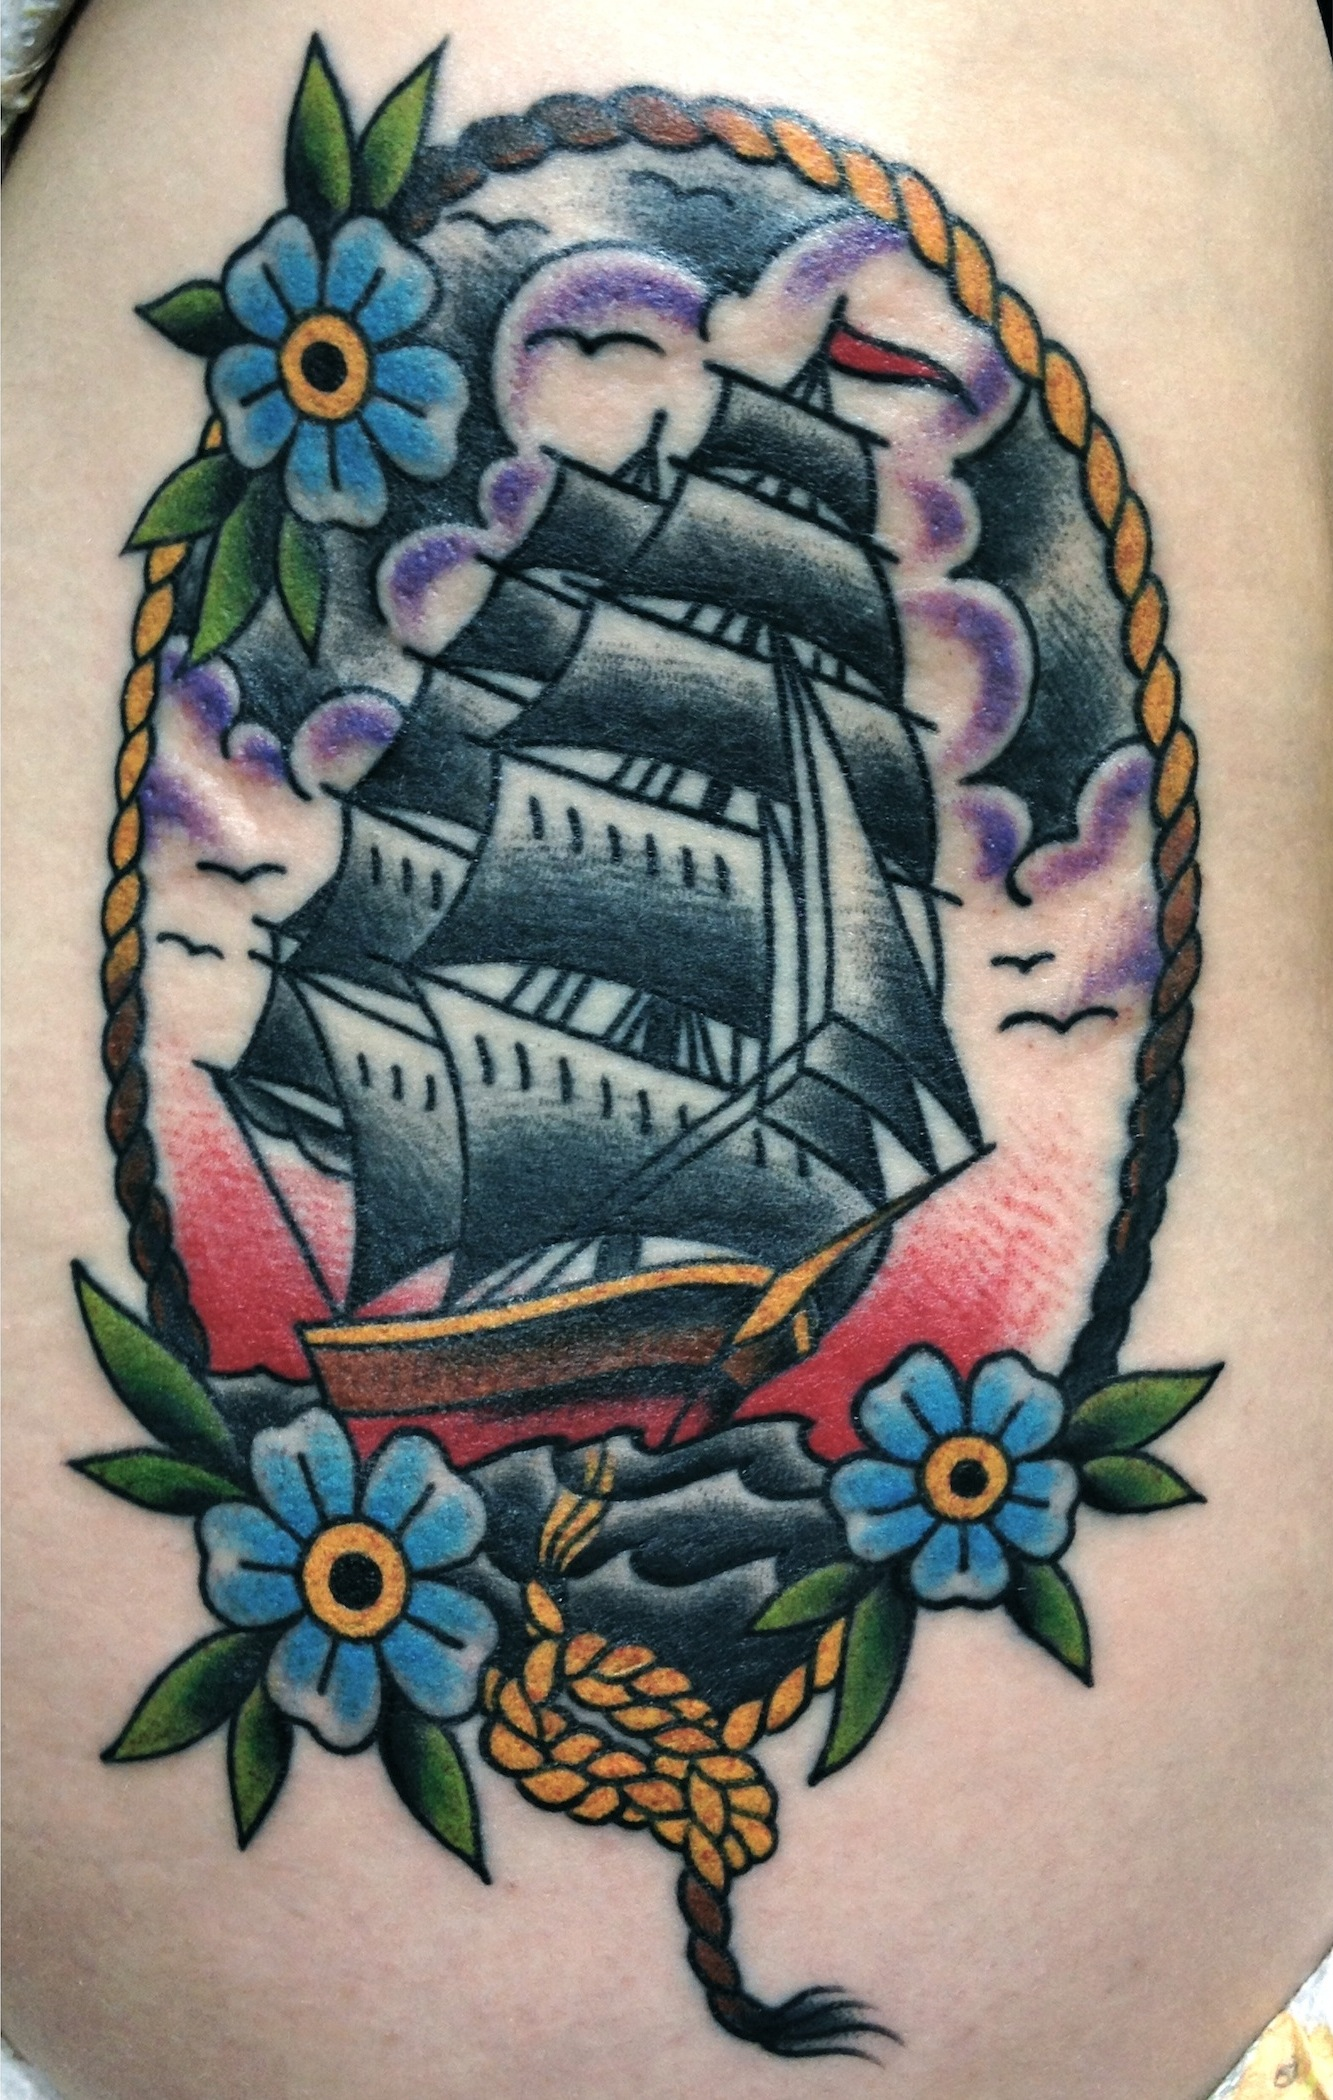 Drawn ship american traditional Tattoo Close My Eyes Can't